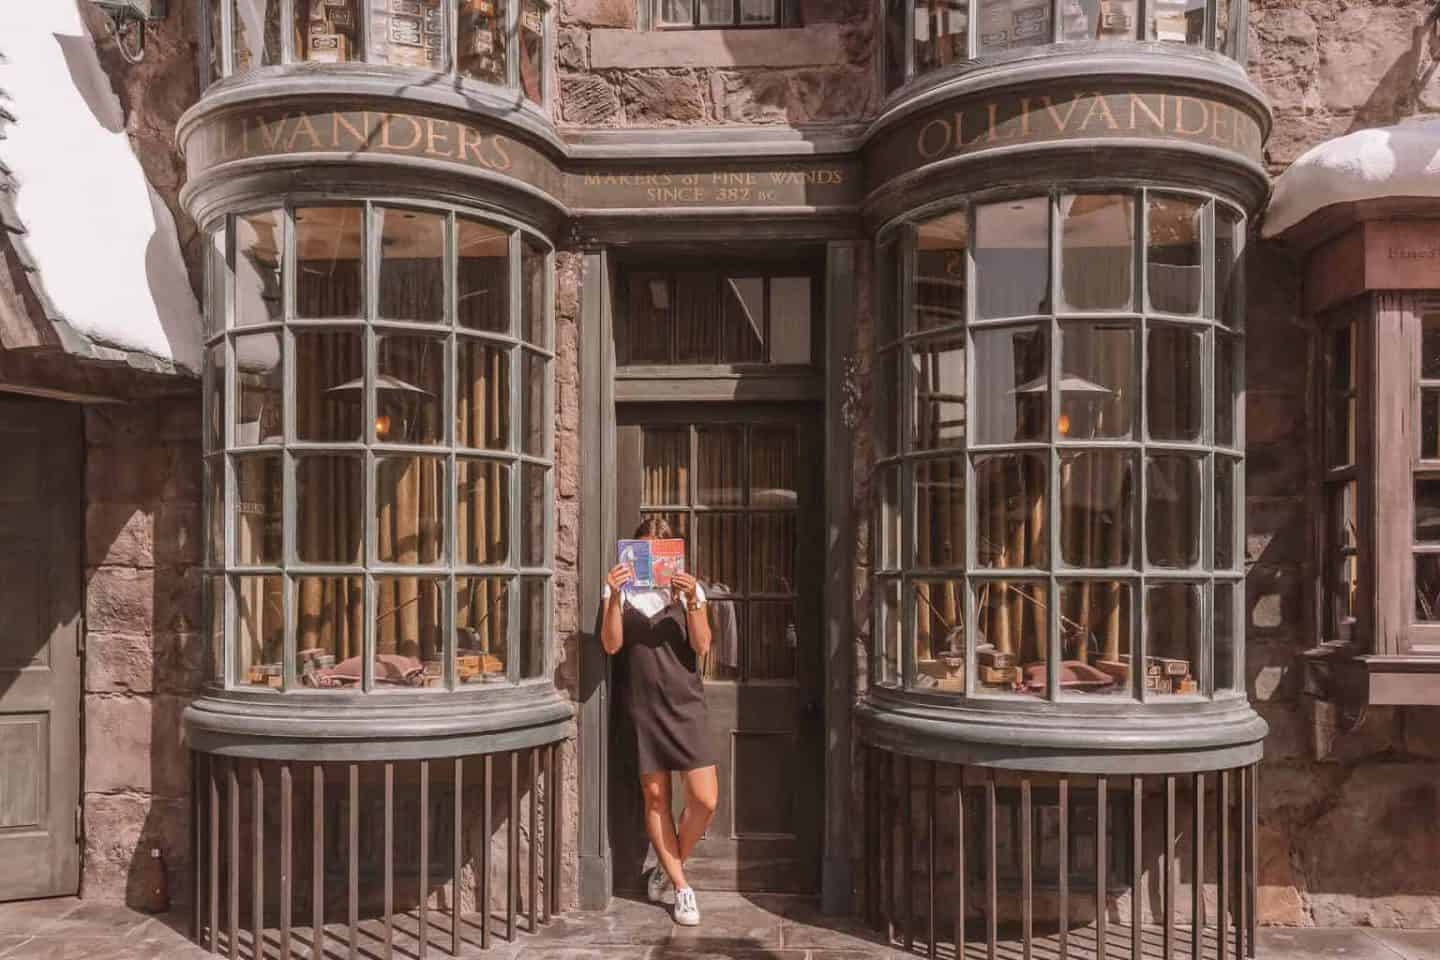 20 Magical Things to Do at the Wizarding World of Harry Potter #whatshotblog